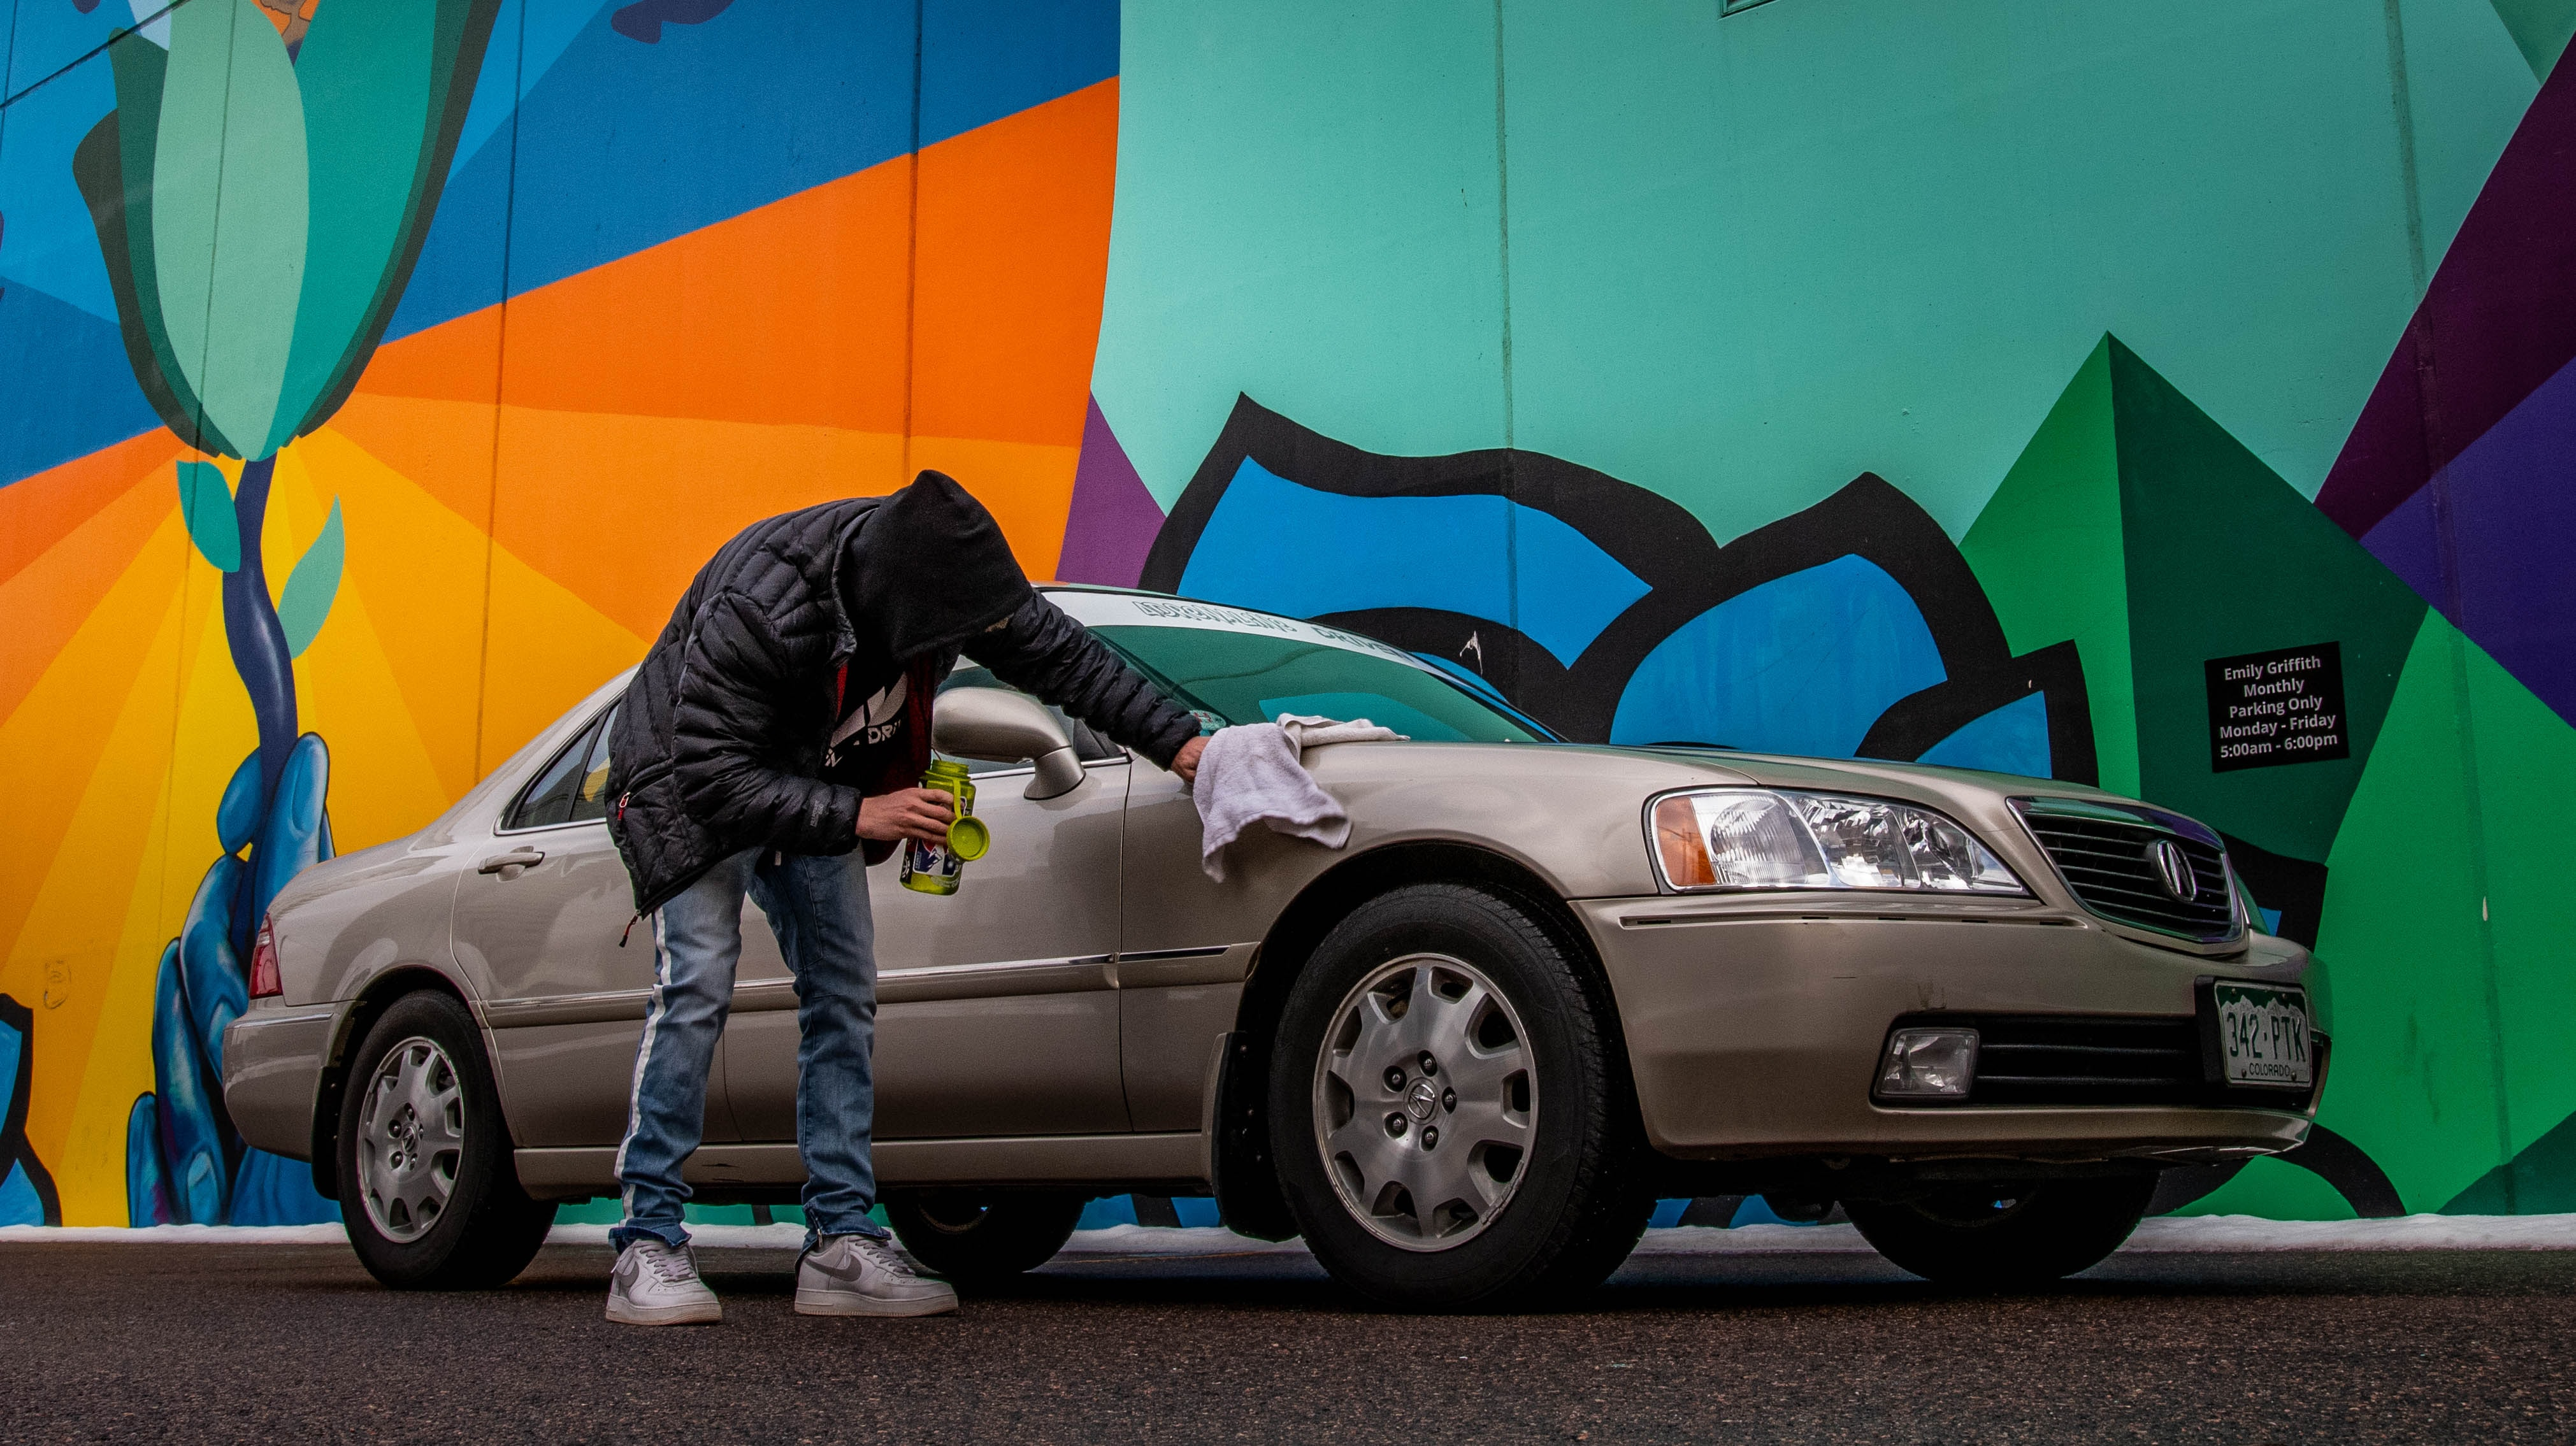 Young adult with sedan near multicolored mural